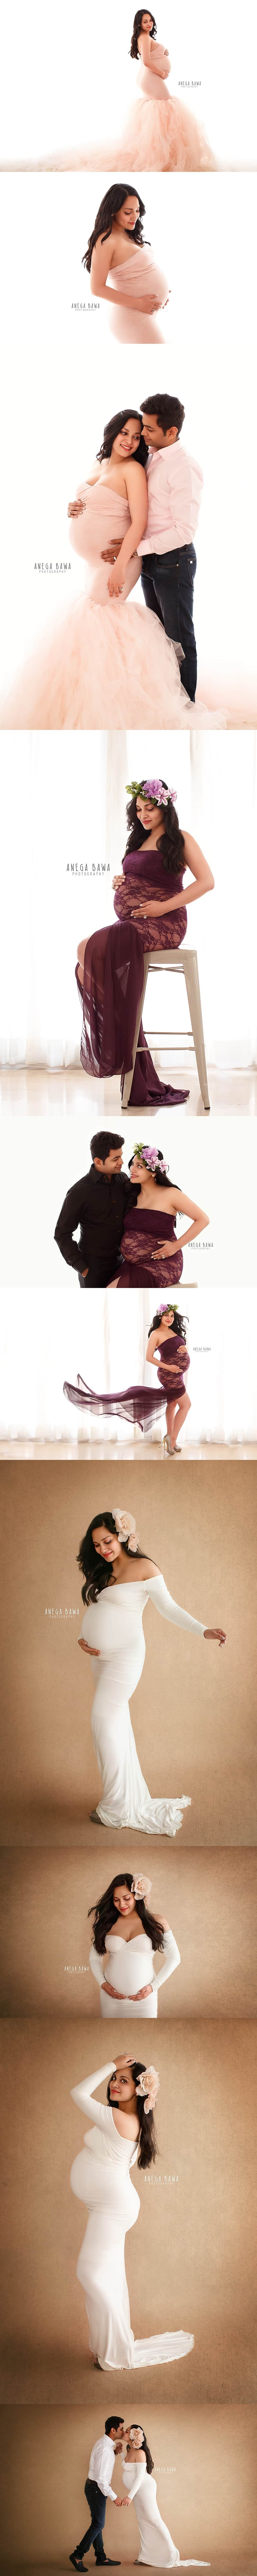 pre_birth_photography_delhi_india_gurgaon_anega_bawa_photography_best